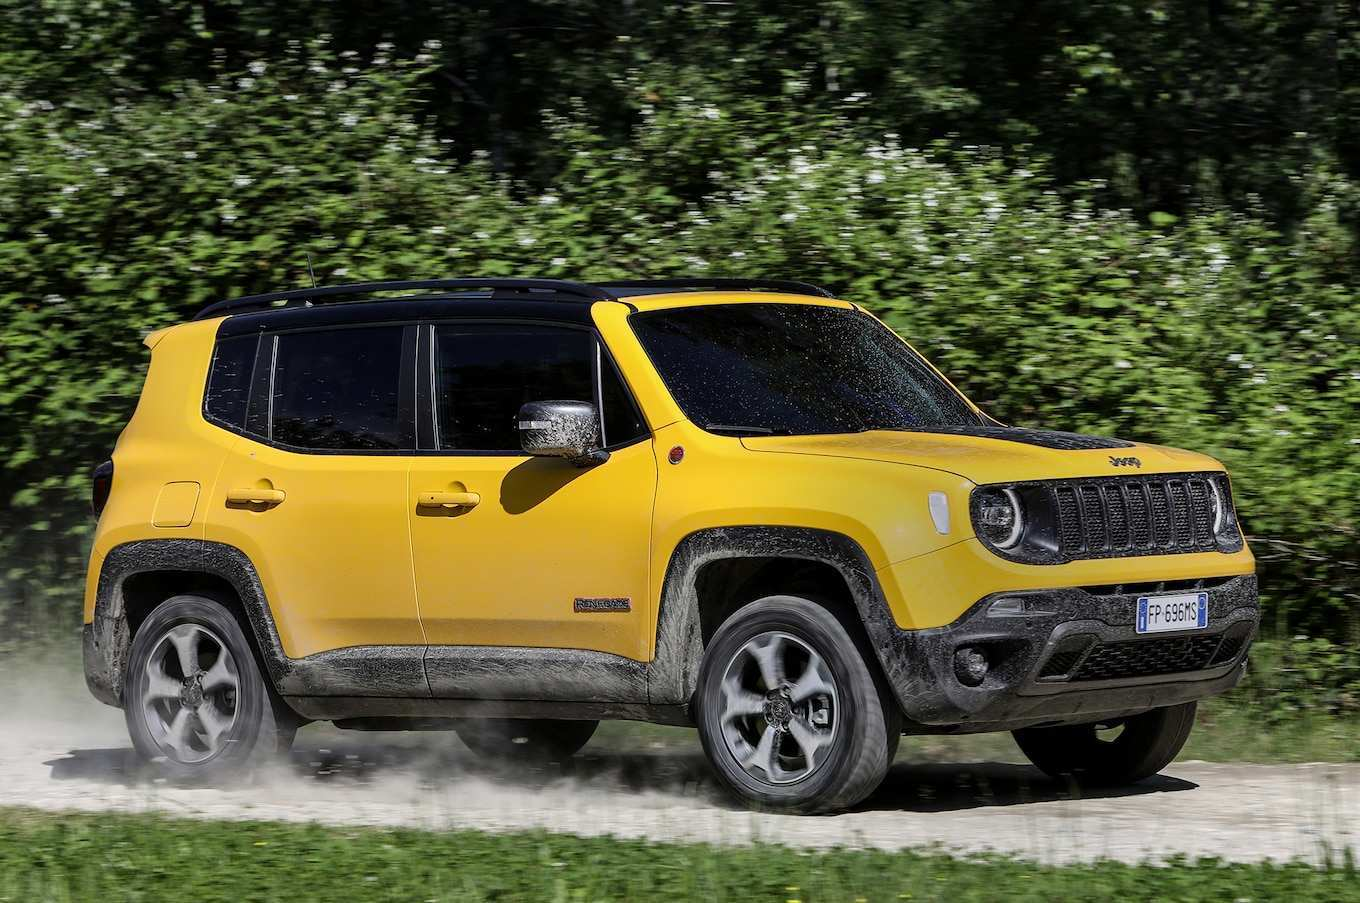 31 Gallery of 2019 Jeep Renegade Review Redesign and Concept for 2019 Jeep Renegade Review